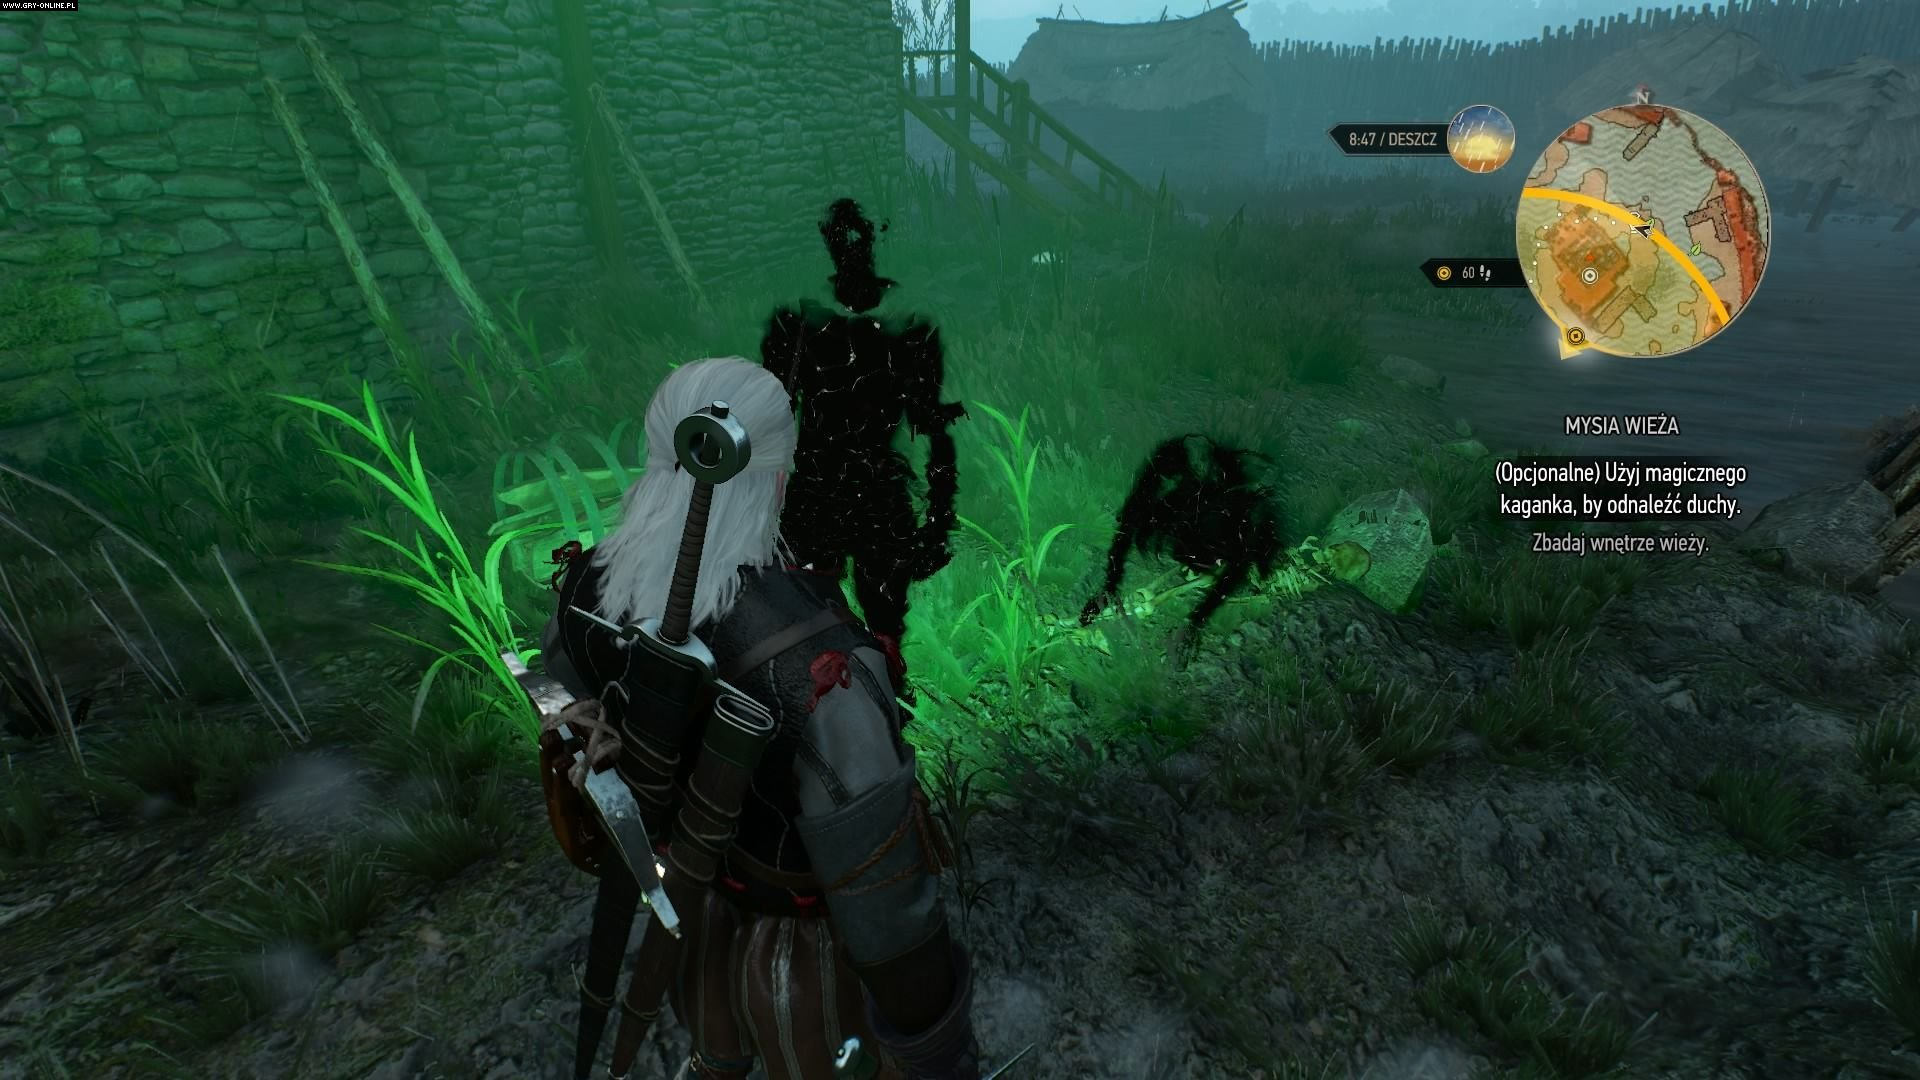 The Witcher 3: Wild Hunt PS4 Games Image 4/185, CD Projekt RED, Bandai Namco Entertainment